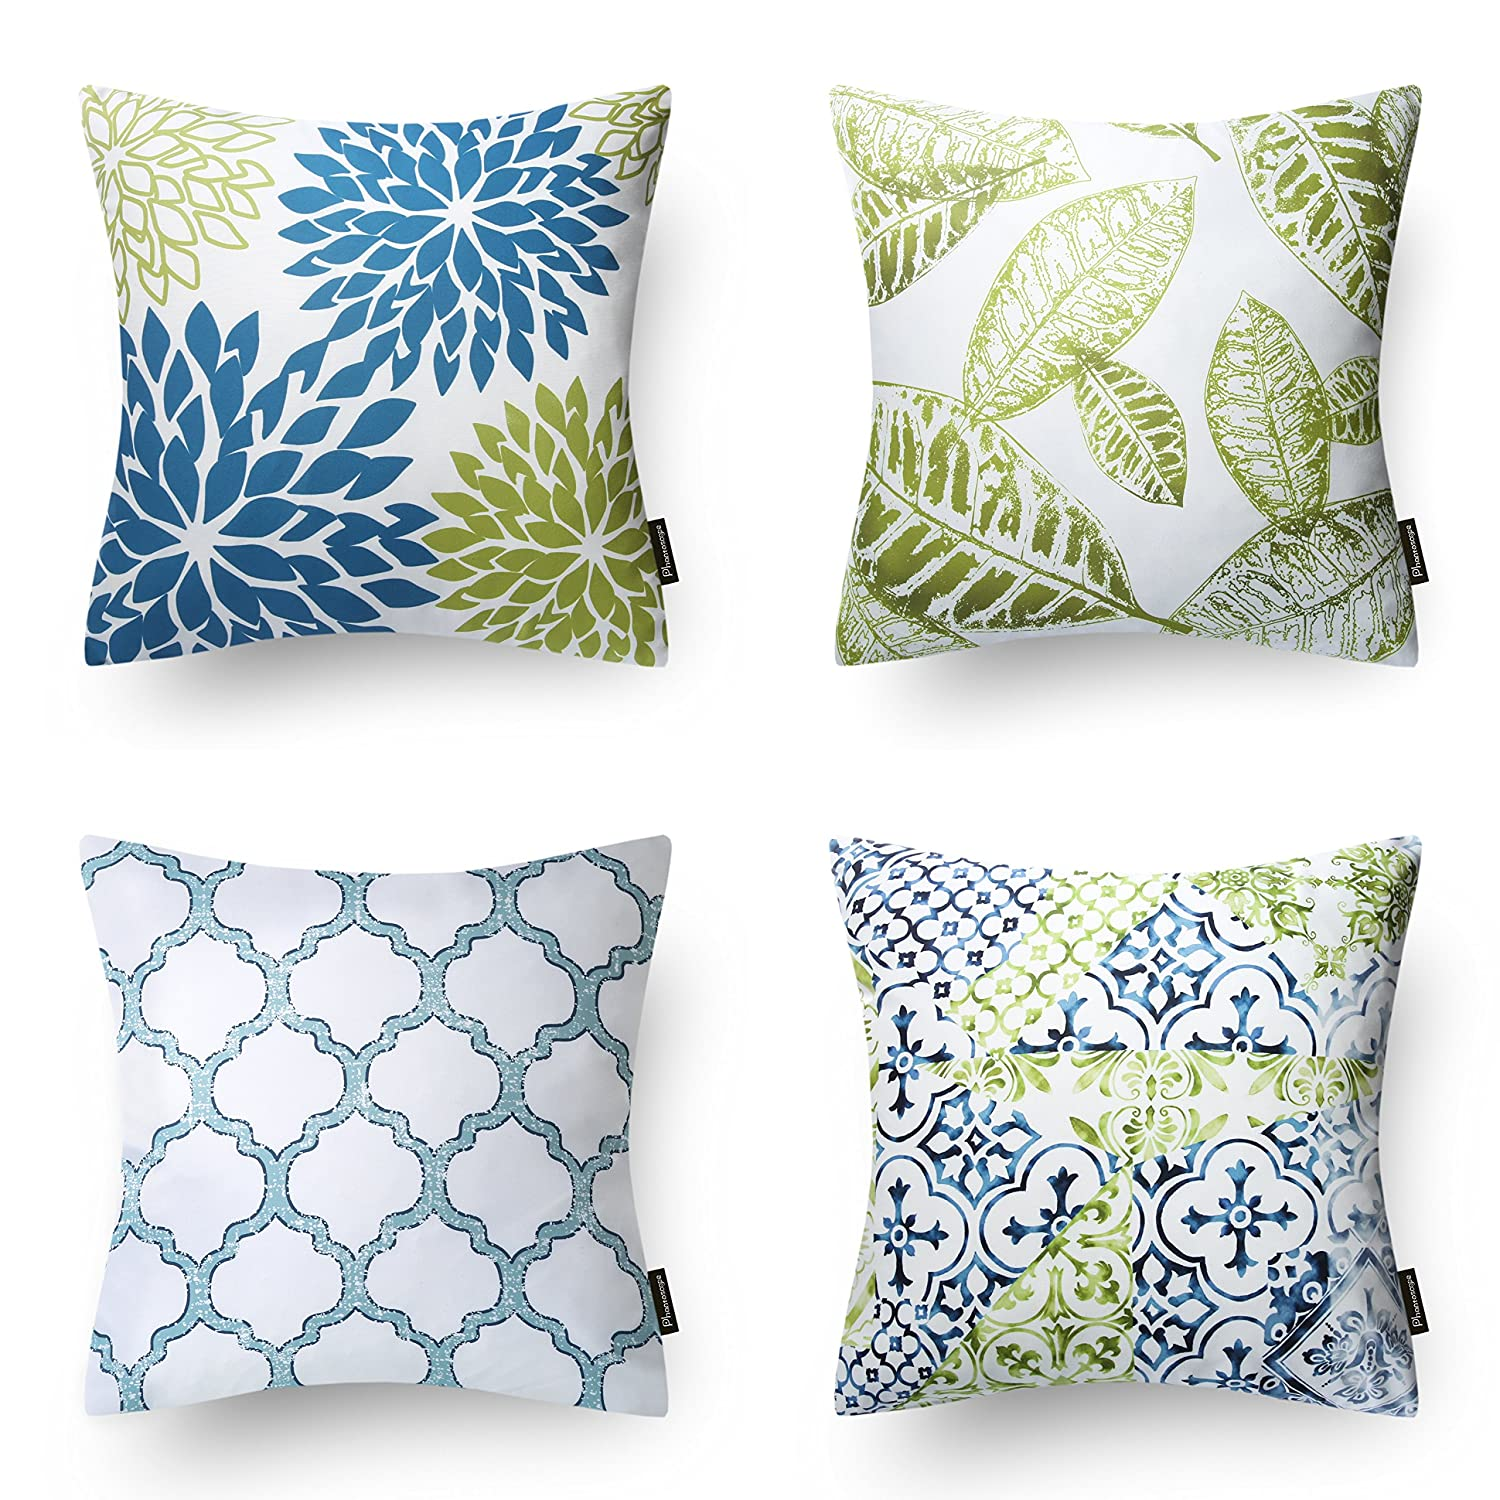 Shop AmazoncomDecorative Pillows